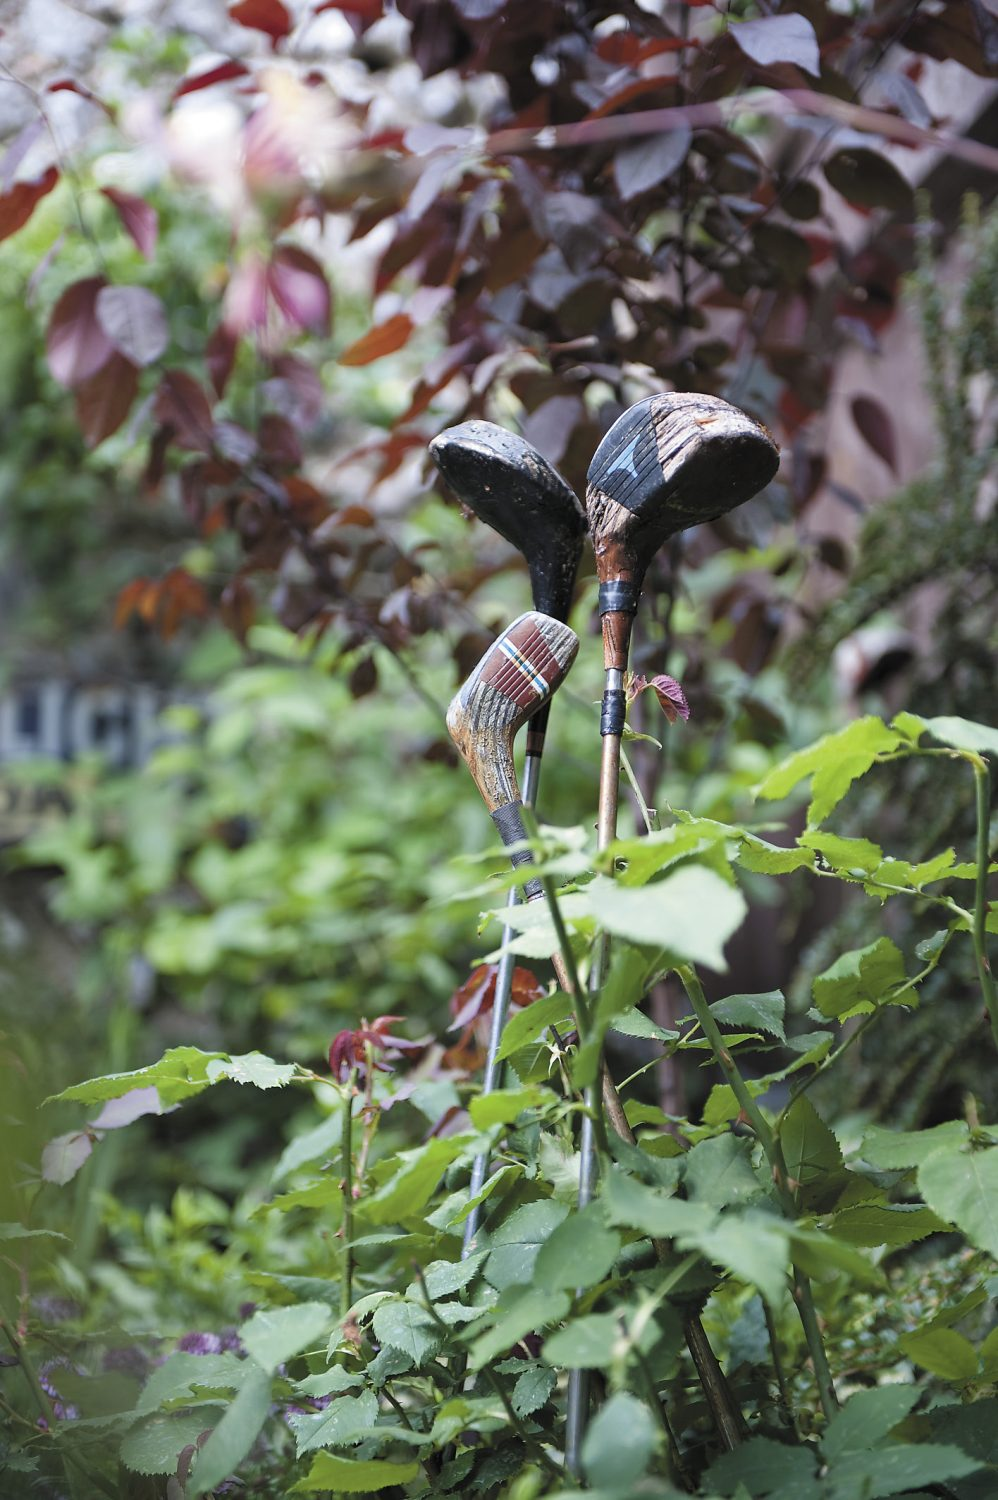 Claire's own garden is an eclectic mix of interesting plants and ornaments made from recycled materials